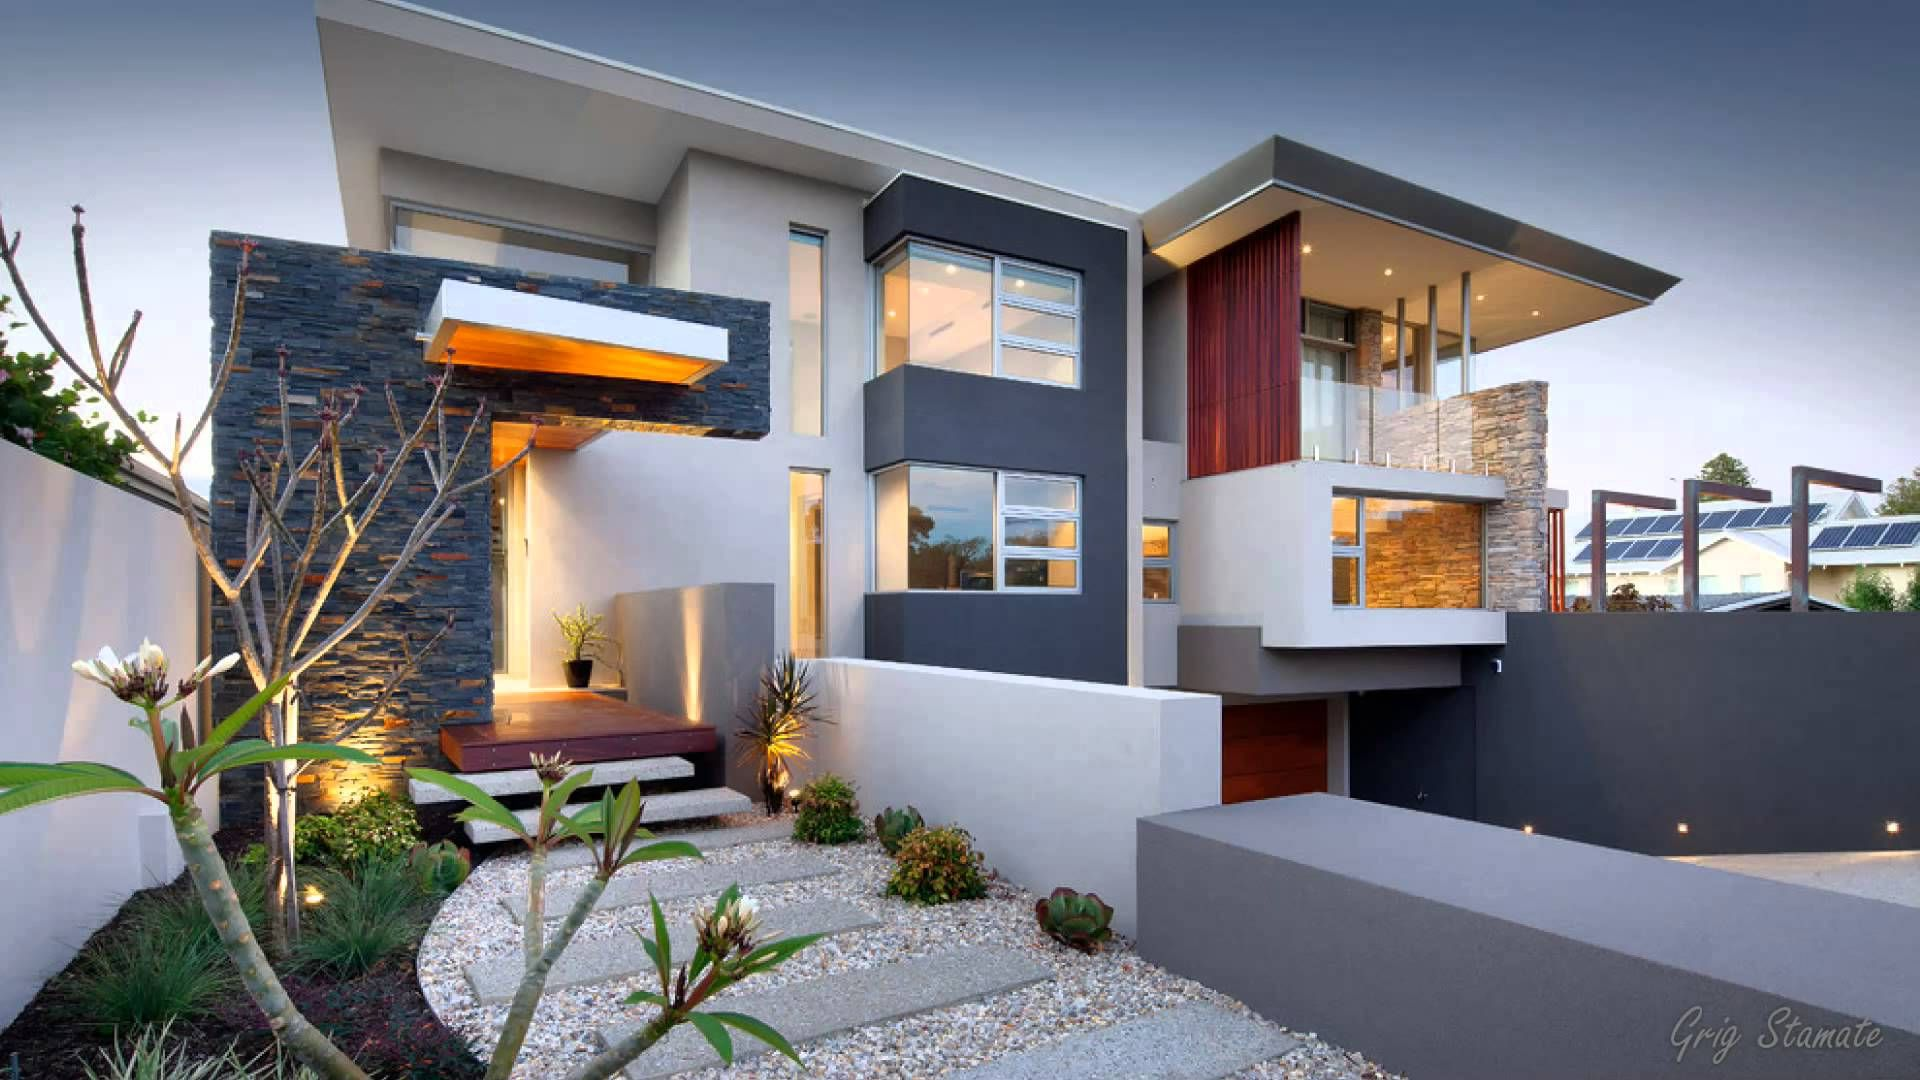 Free Images About Contemporary Living In A Modern World On Pinterest With